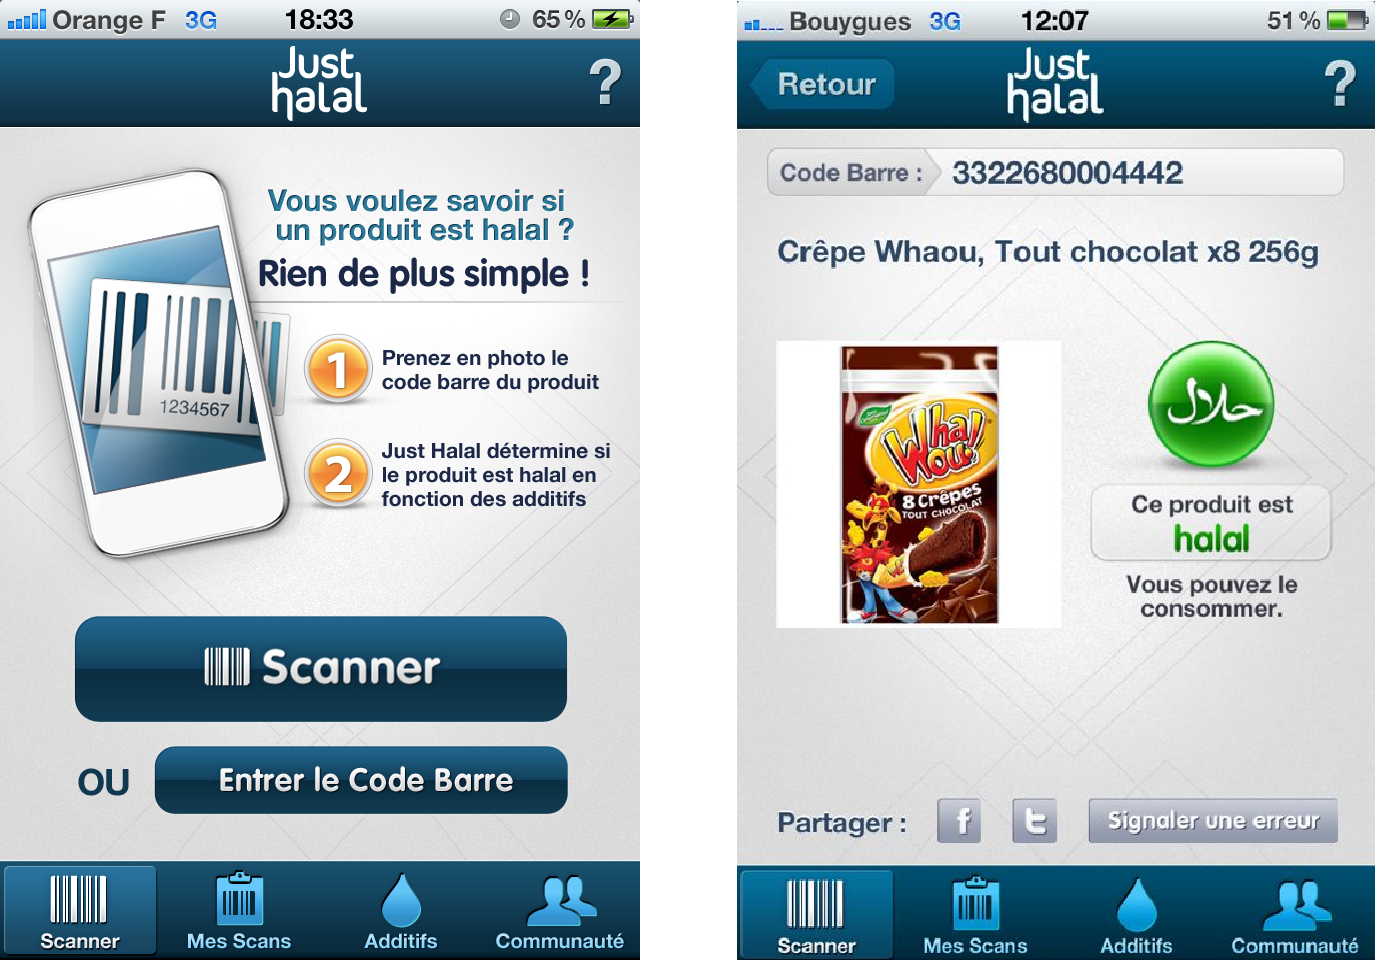 http://www.agro-media.fr/img/just_halal_smartphone.png